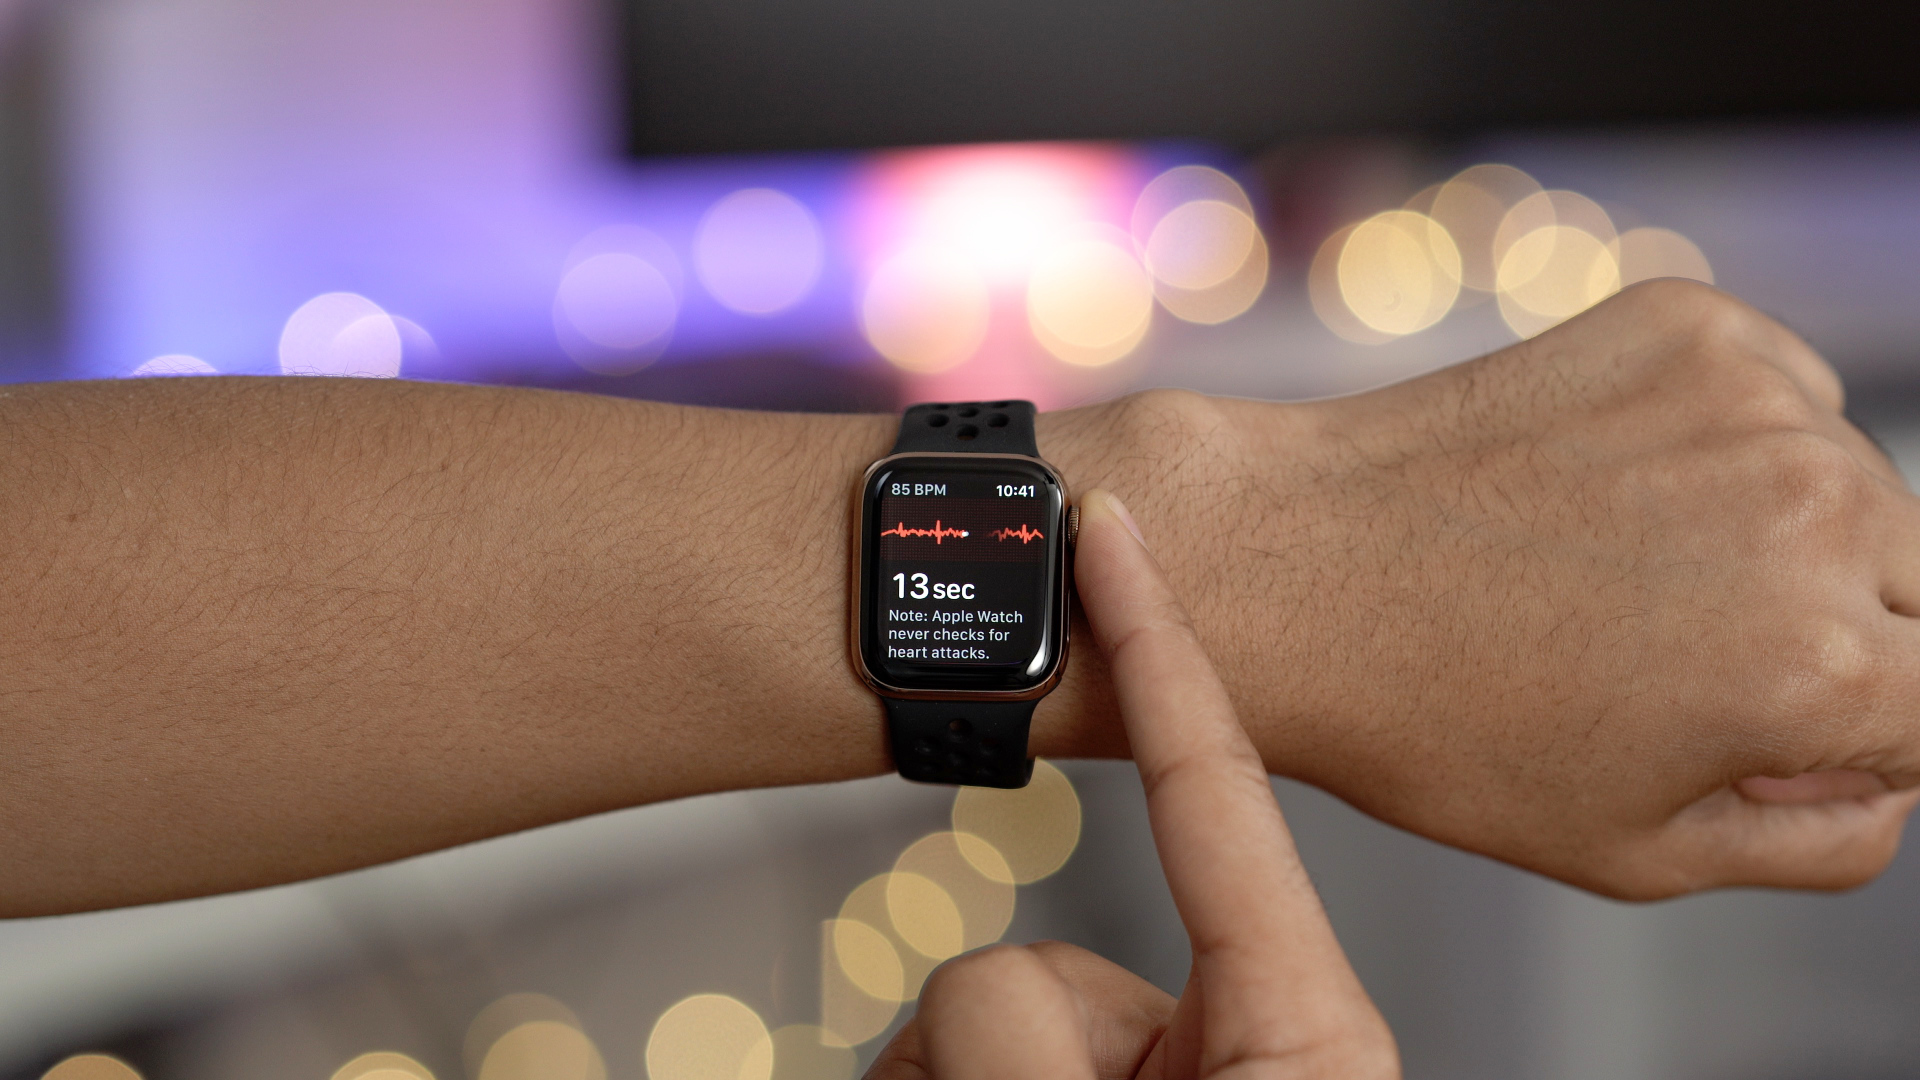 Apple Watch credited with alerting Seattle man his A-fib had returned, potentially preventing stroke